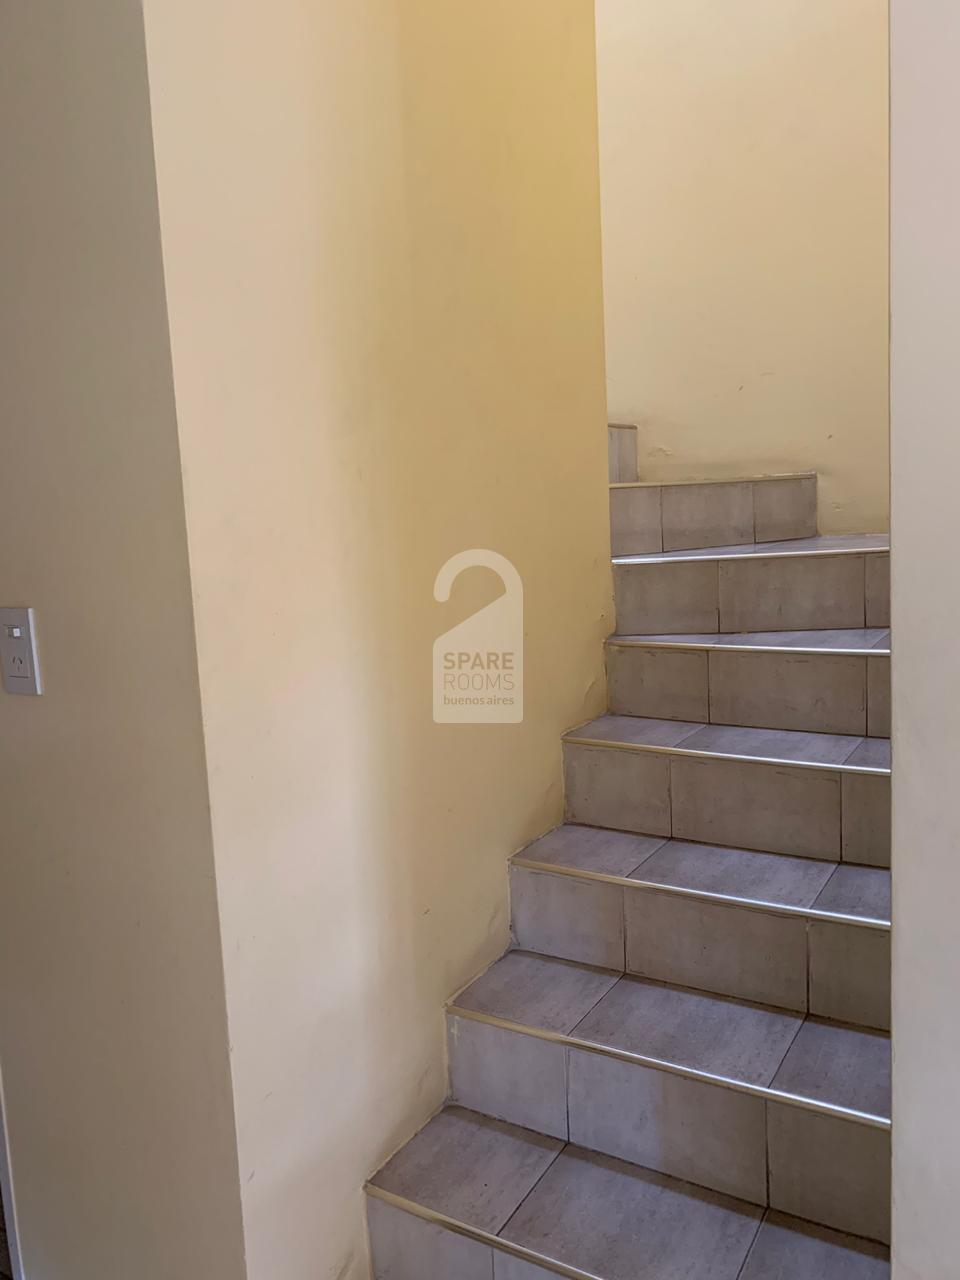 Stairs to room and shared bathrom